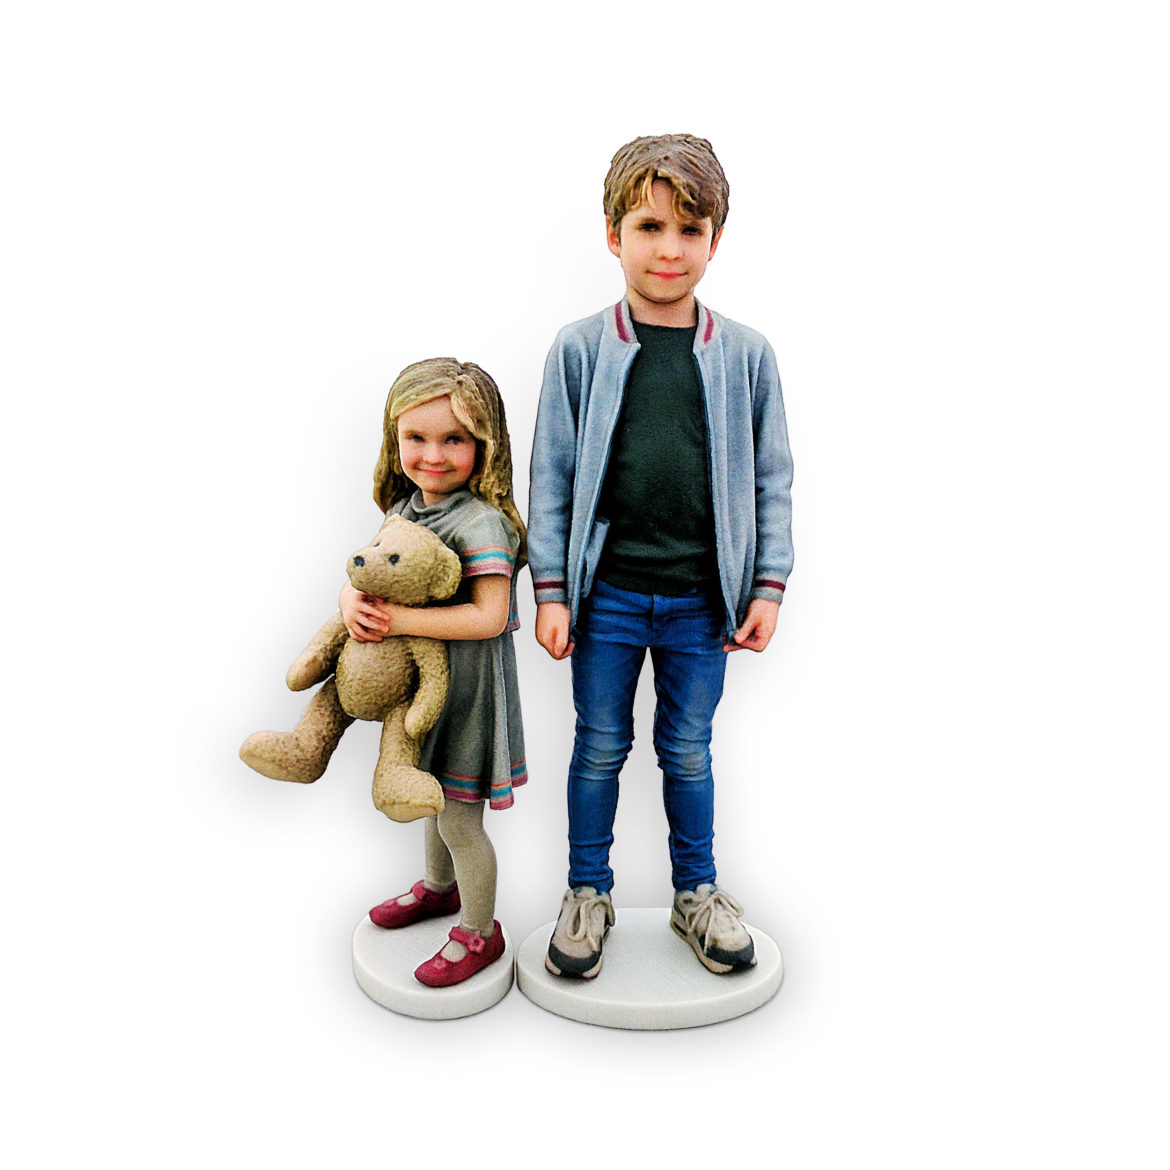 my3Dtwin, 3D Printed Figurines of two kids with teddy bear in hands